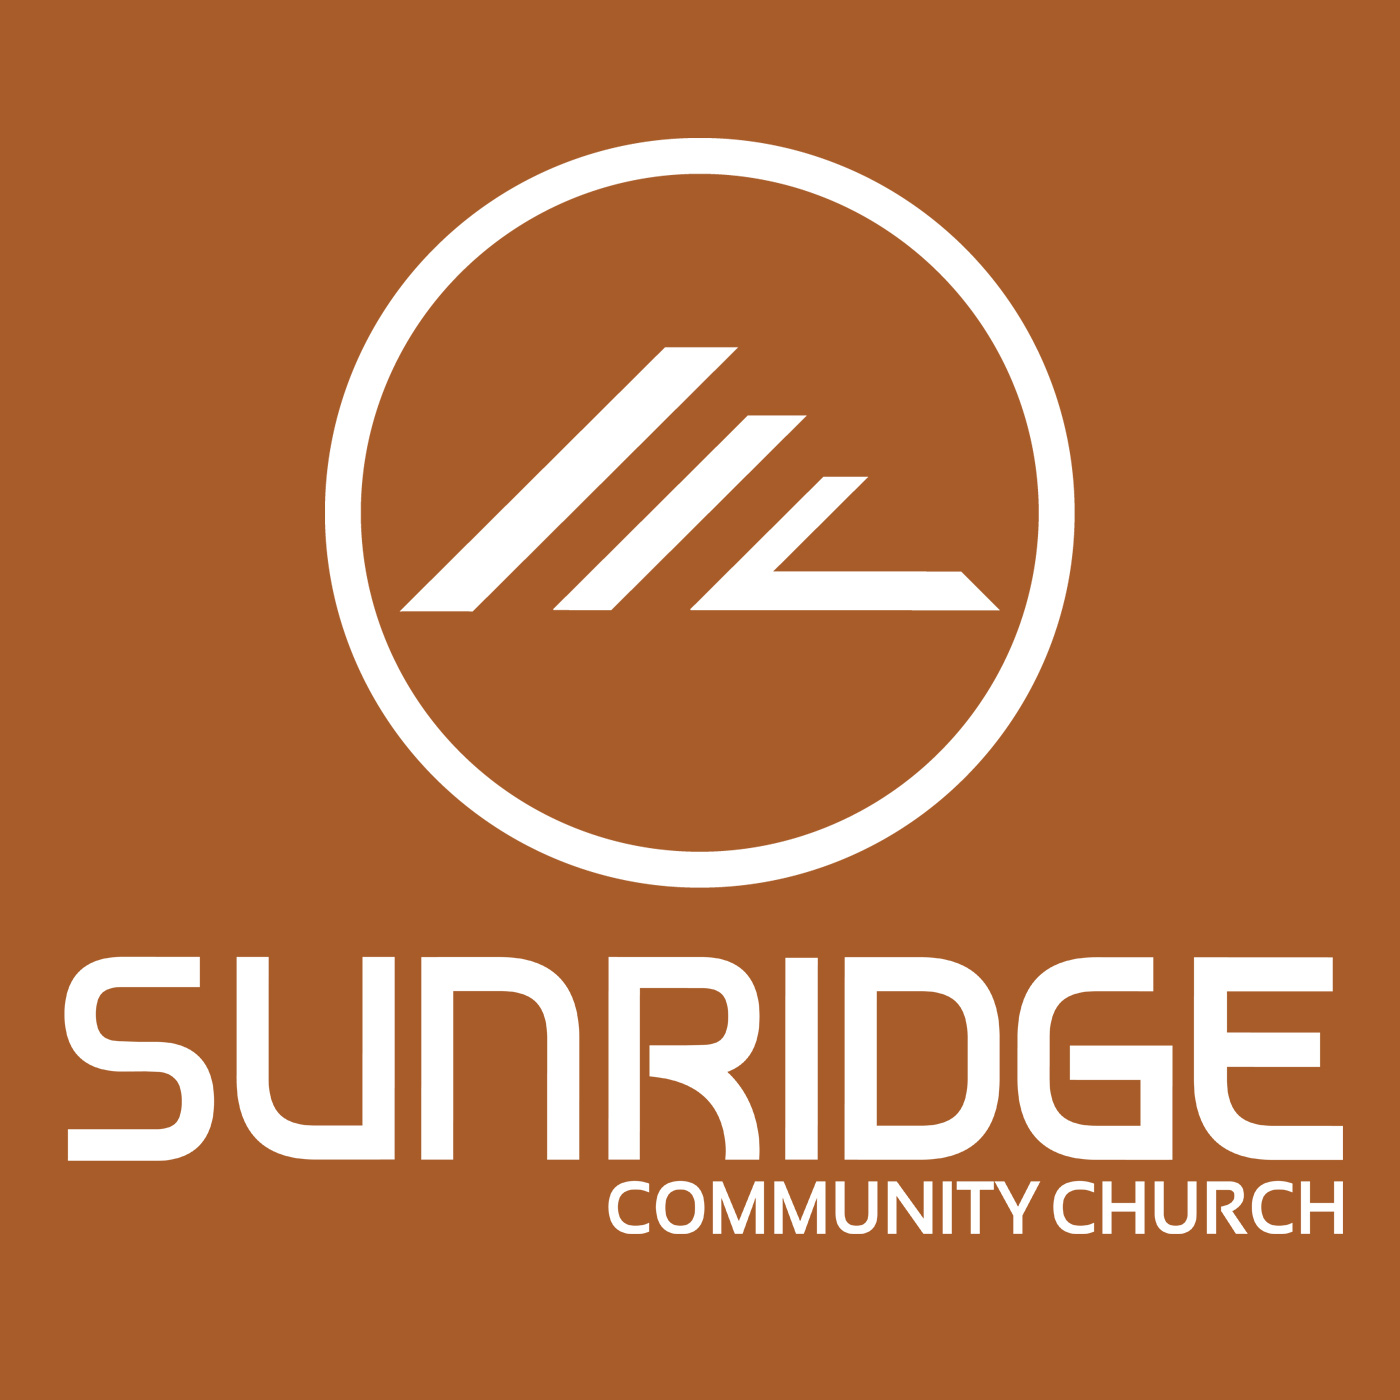 Sunridge Community Church